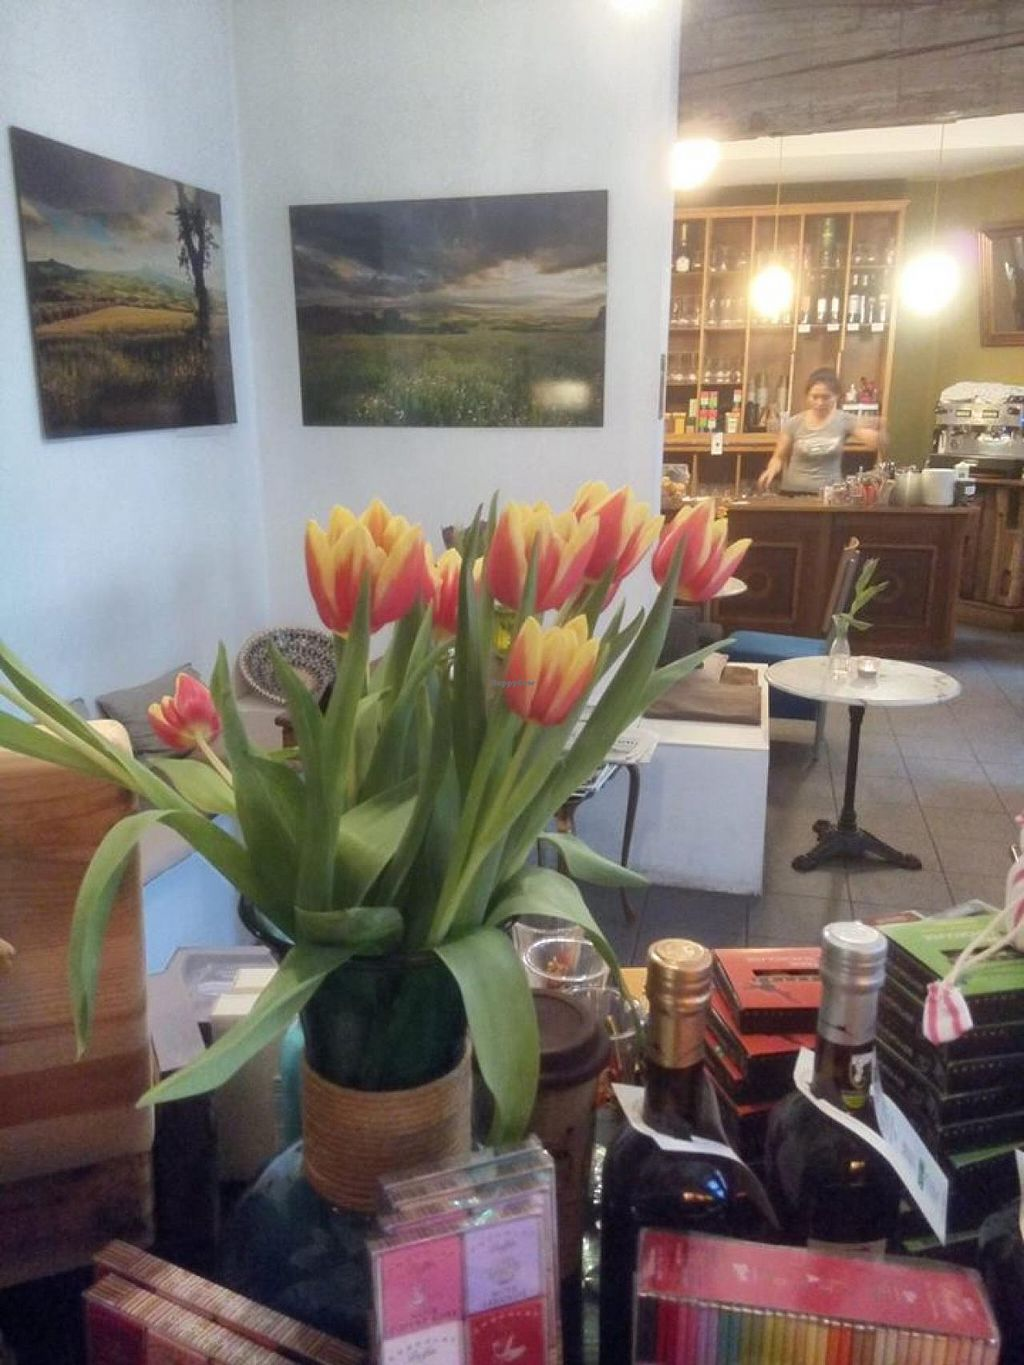 """Photo of Chocolaterie Yilliy  by <a href=""""/members/profile/community"""">community</a> <br/>Chocolaterie Yilliy <br/> June 8, 2015  - <a href='/contact/abuse/image/59208/105127'>Report</a>"""